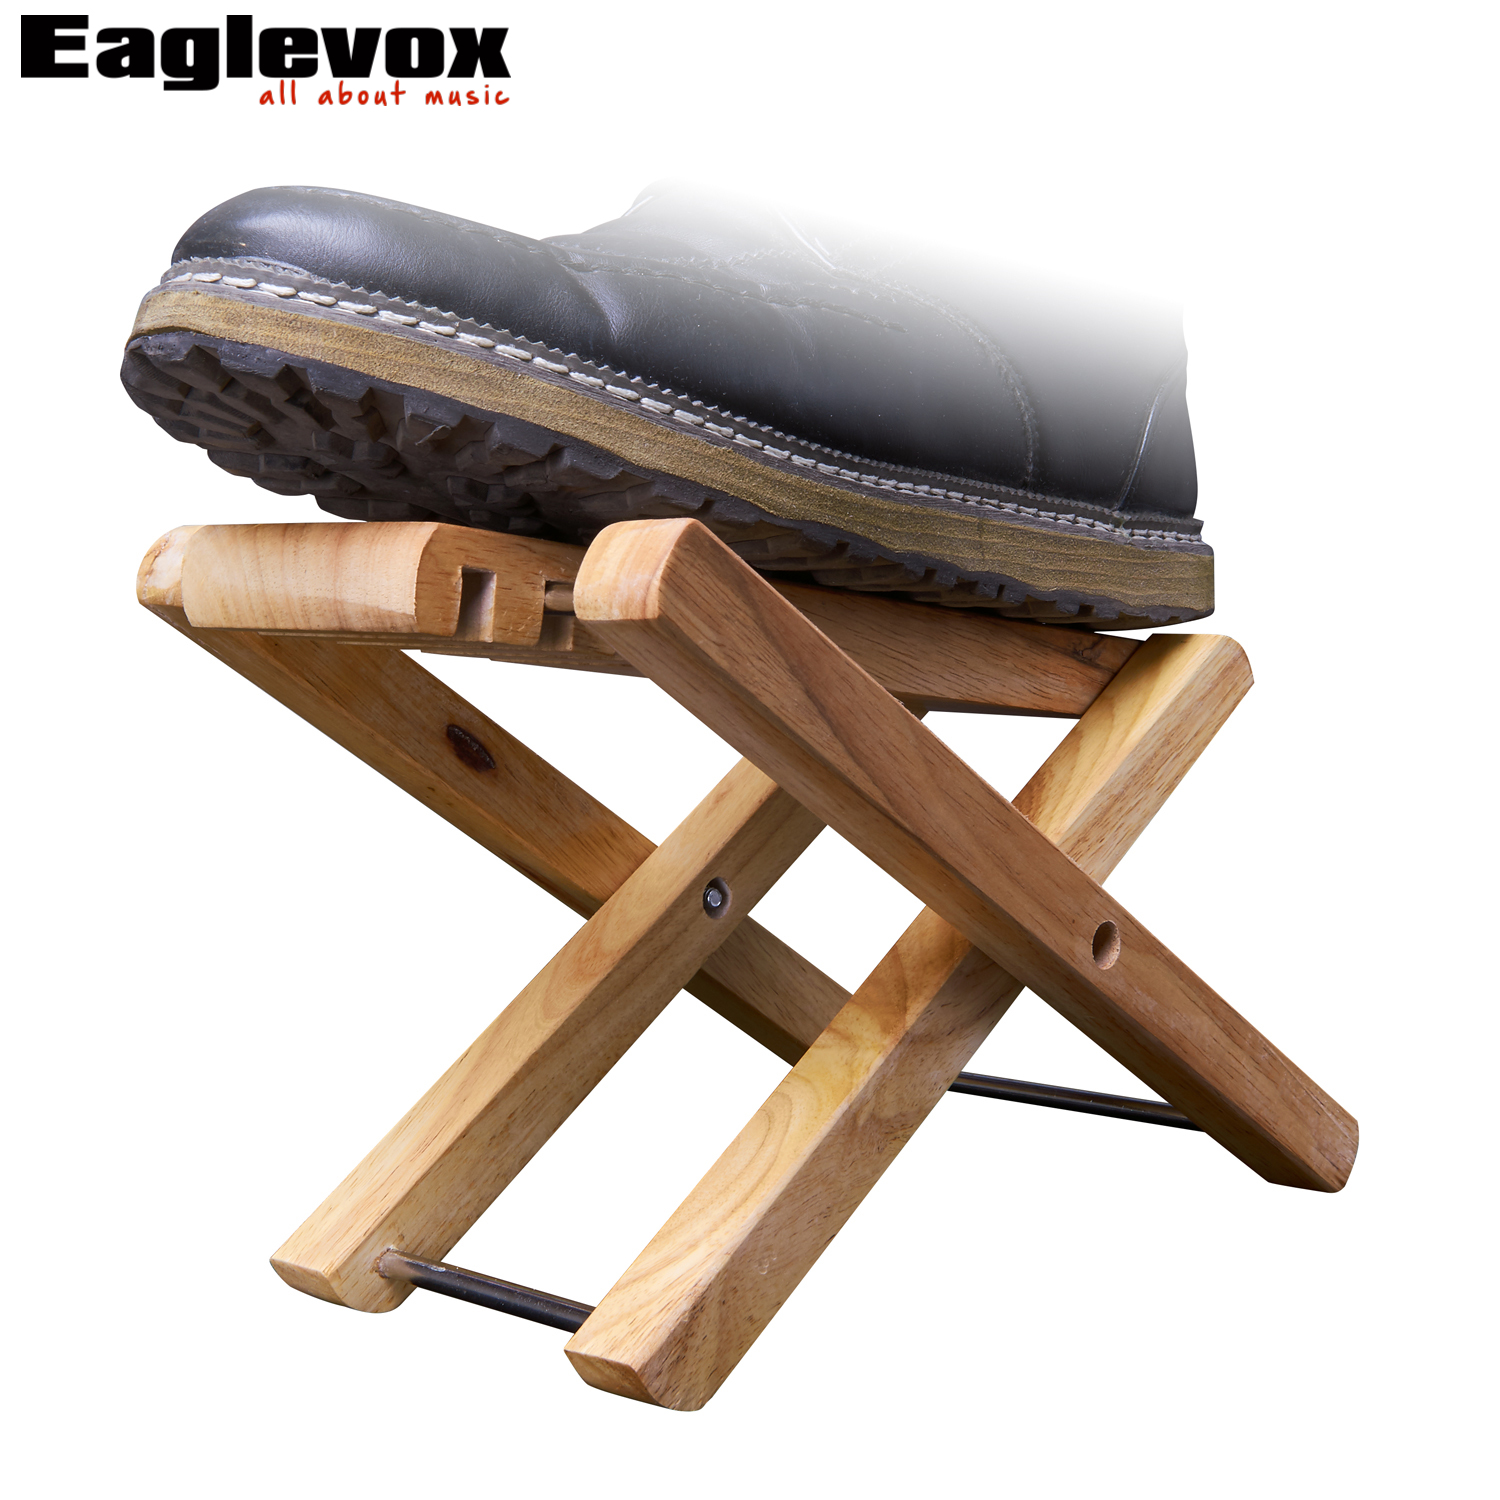 guitar footrest wood foldable foot rest stand 3 easily adjusted height positions am wp10 in. Black Bedroom Furniture Sets. Home Design Ideas